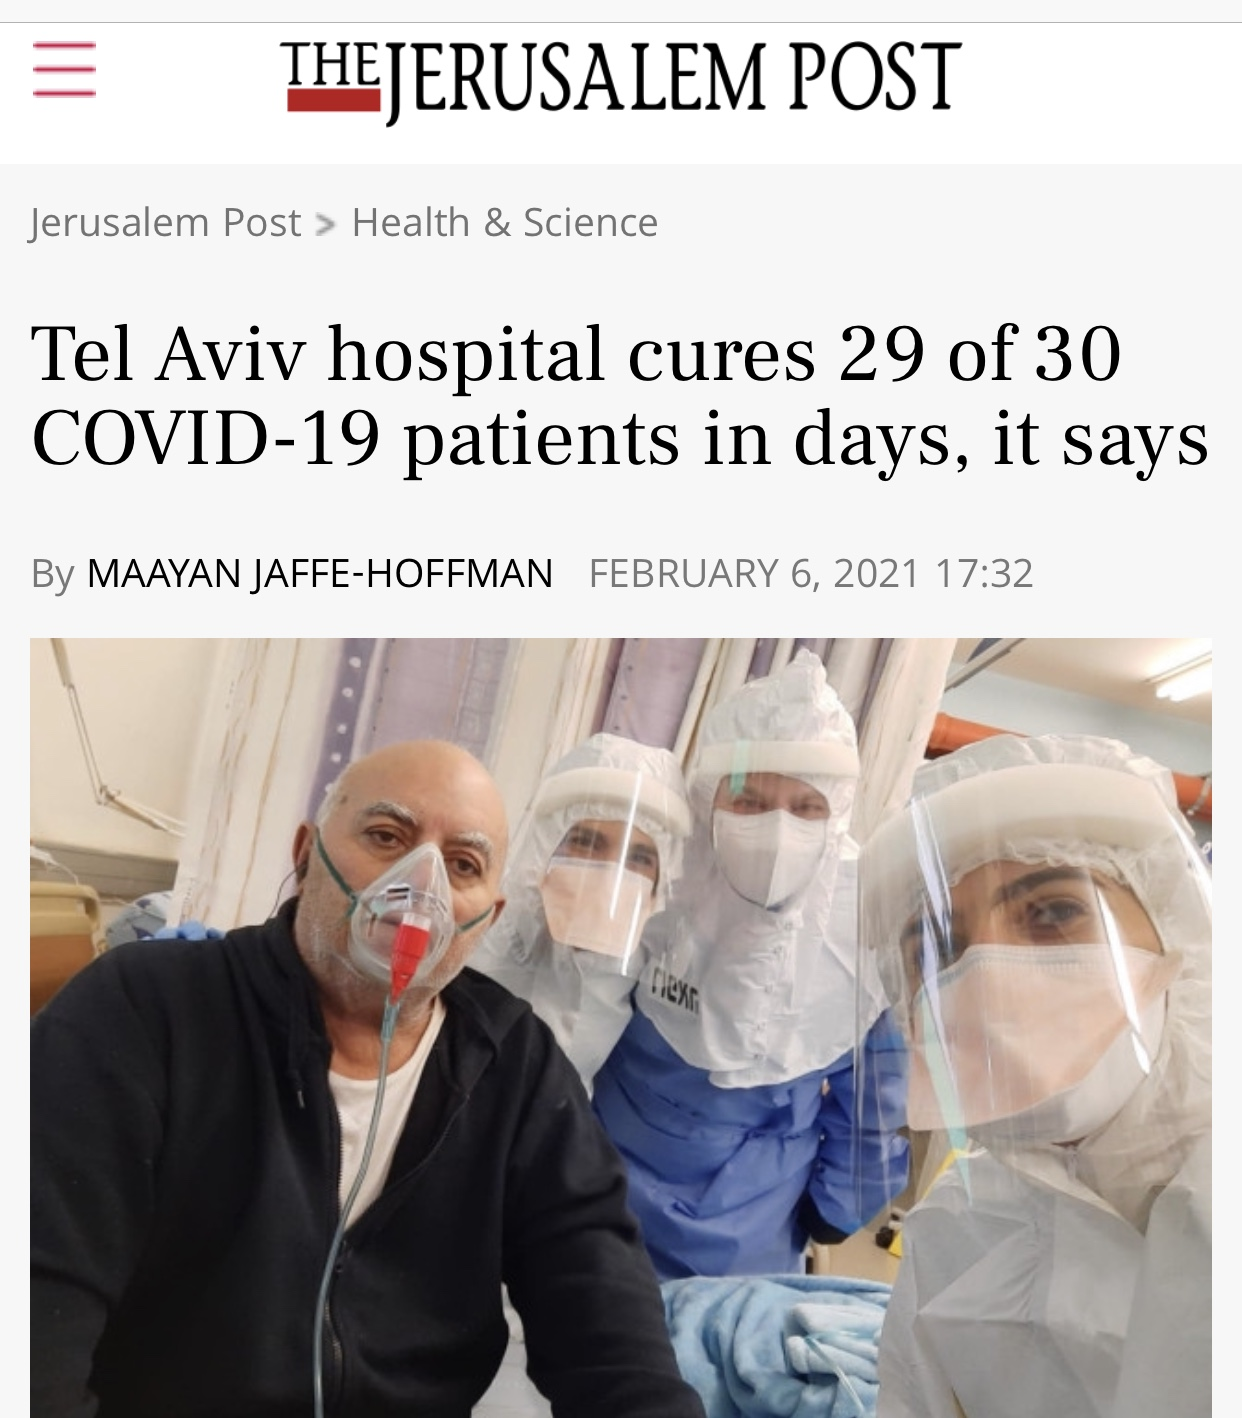 Breaking News Tel Aviv hospital cures 29 of 30 COVID-19 patients in days, it says